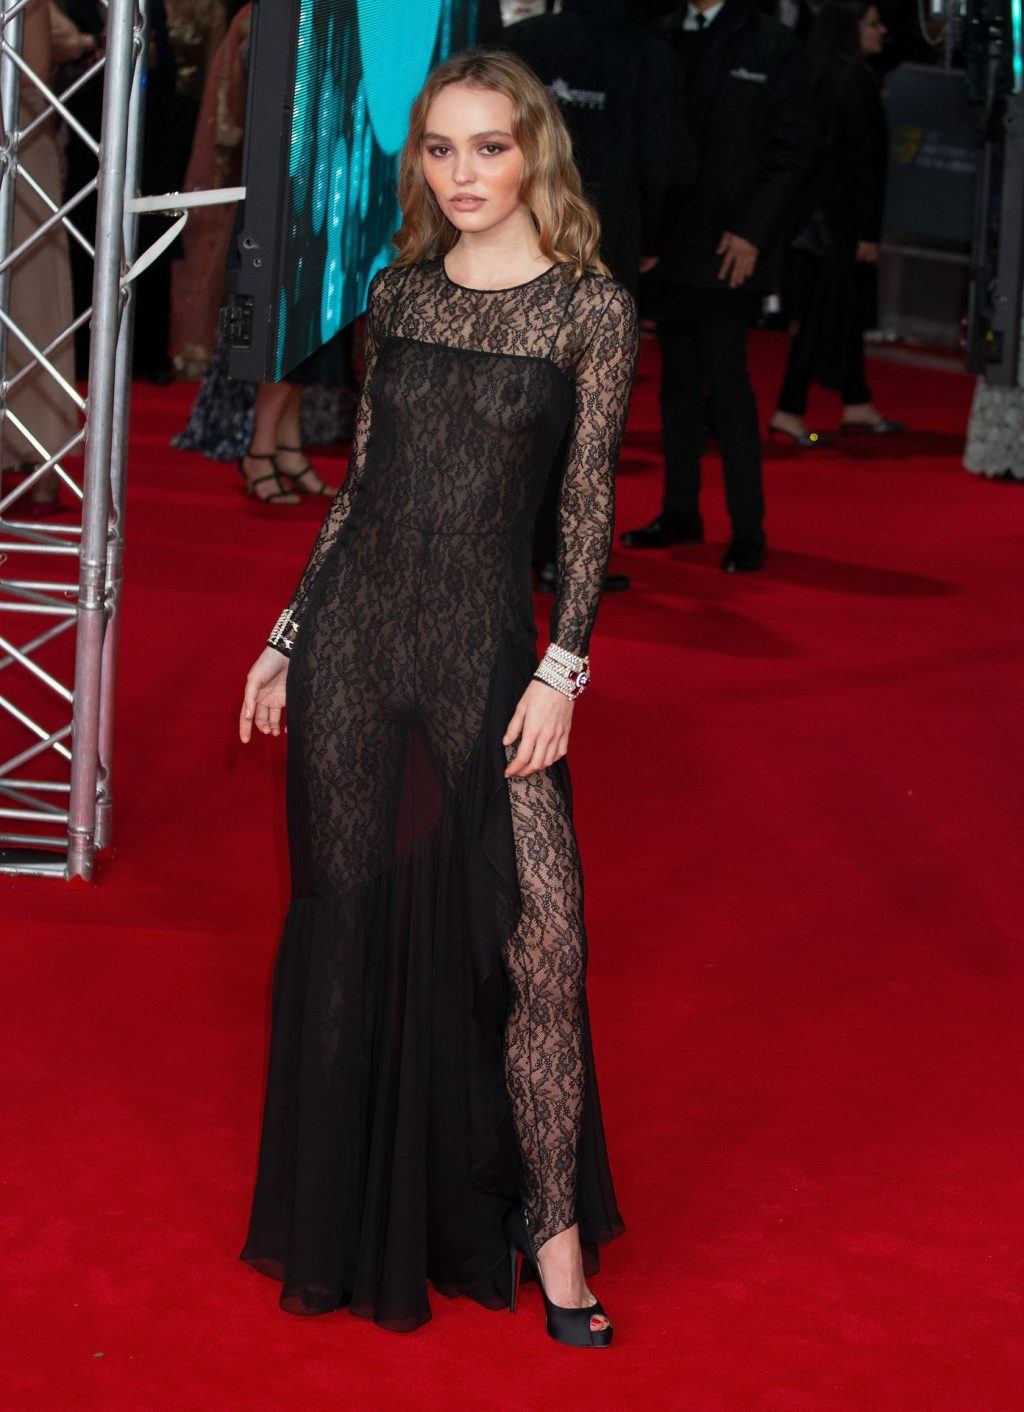 Lily-Rose Depp Attends EE Bafta Awards 2020 (147 Photos)